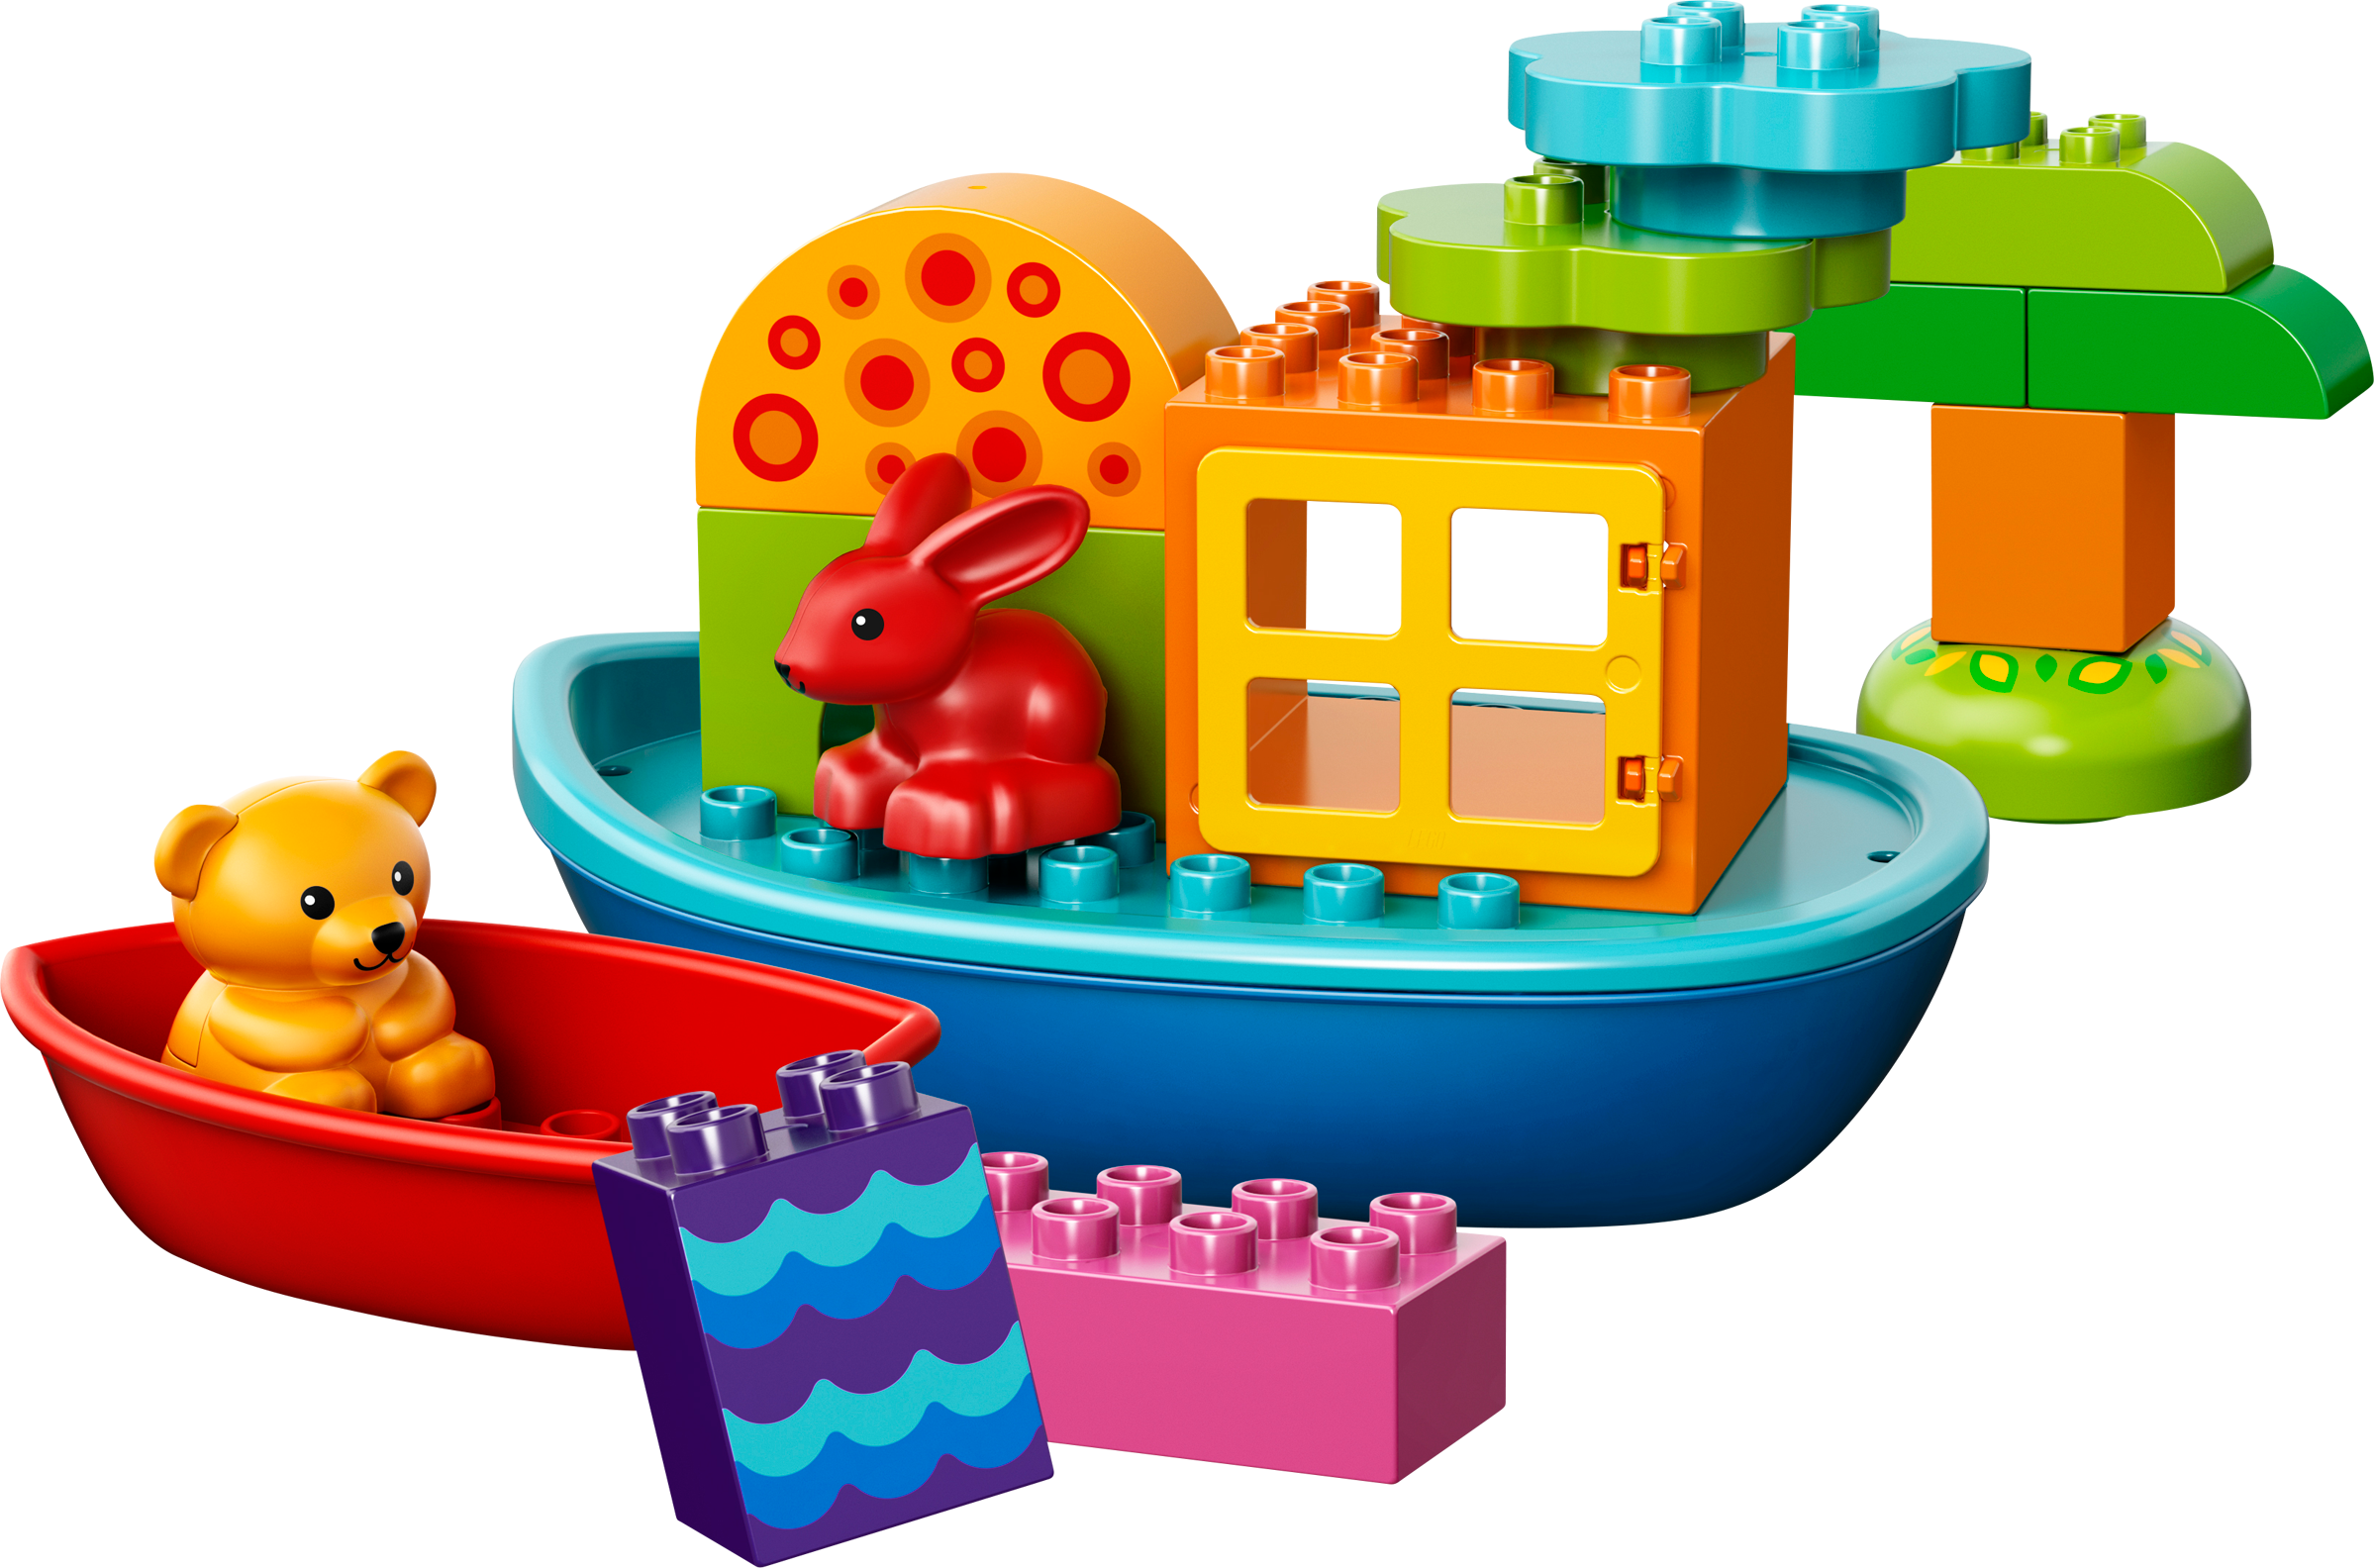 Toddler Build and Boat Fun